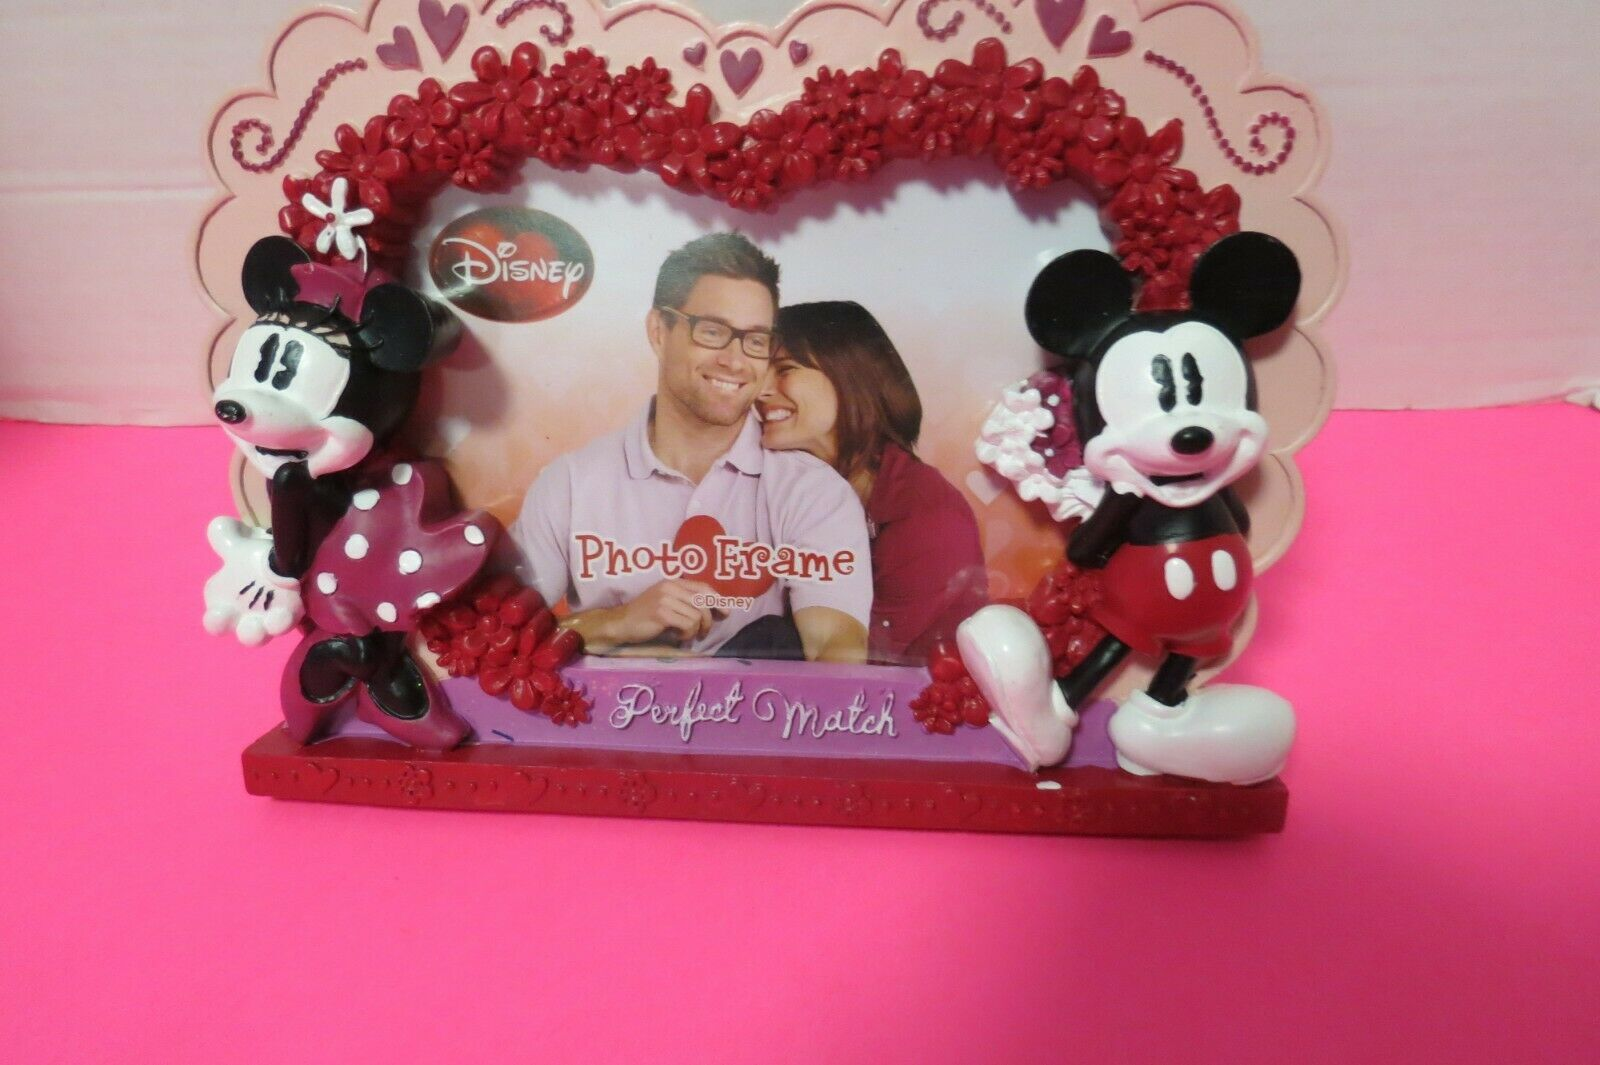 Disney Mickey And Minnie Mouse 3D Ceramic 4 x 6 Photo Frame Perfect Match - $19.95